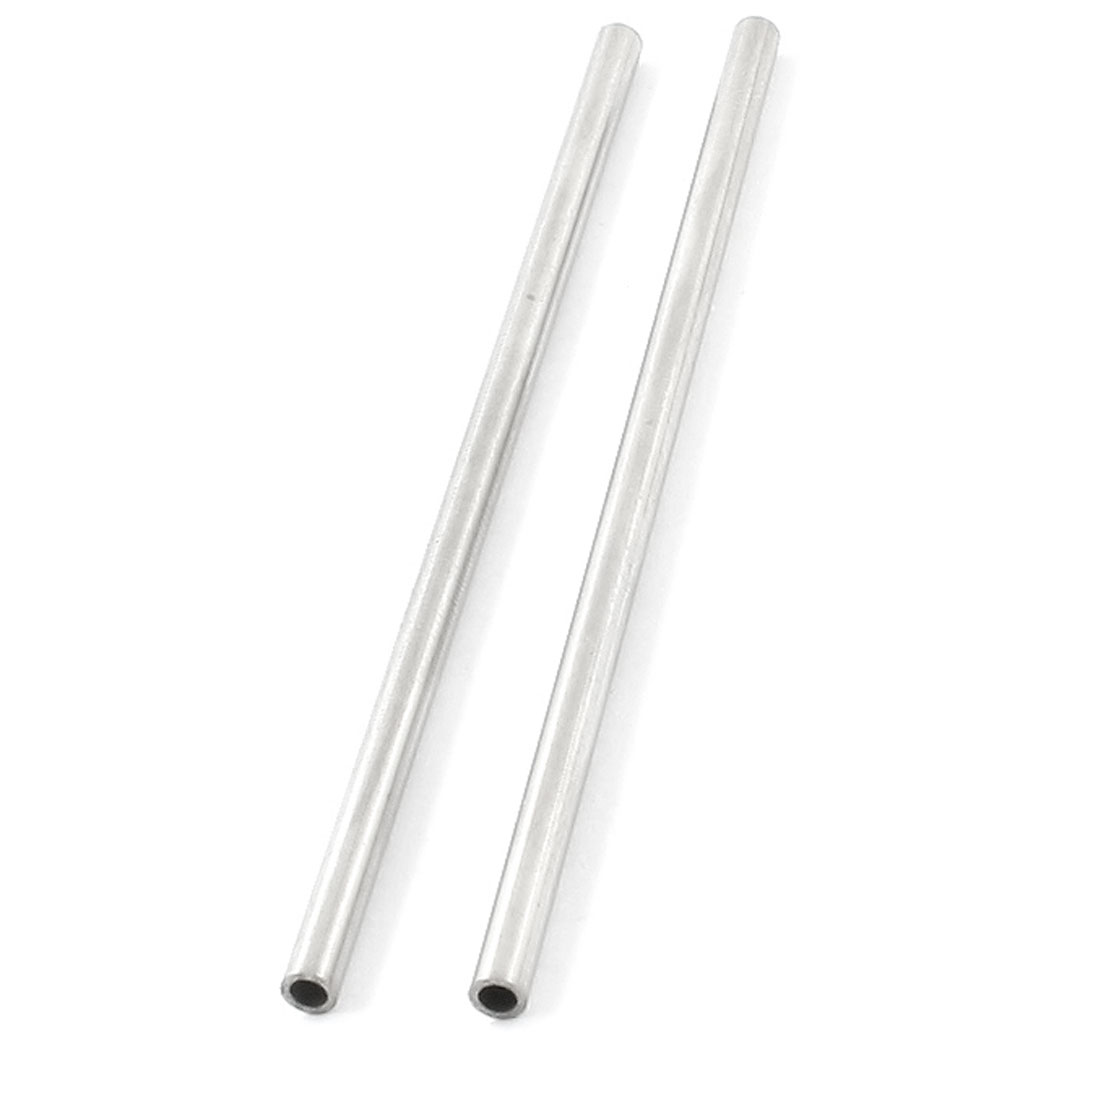 2Pcs Transmission Stainless Steel Welded Round Tubing Rods 80 x 3mm